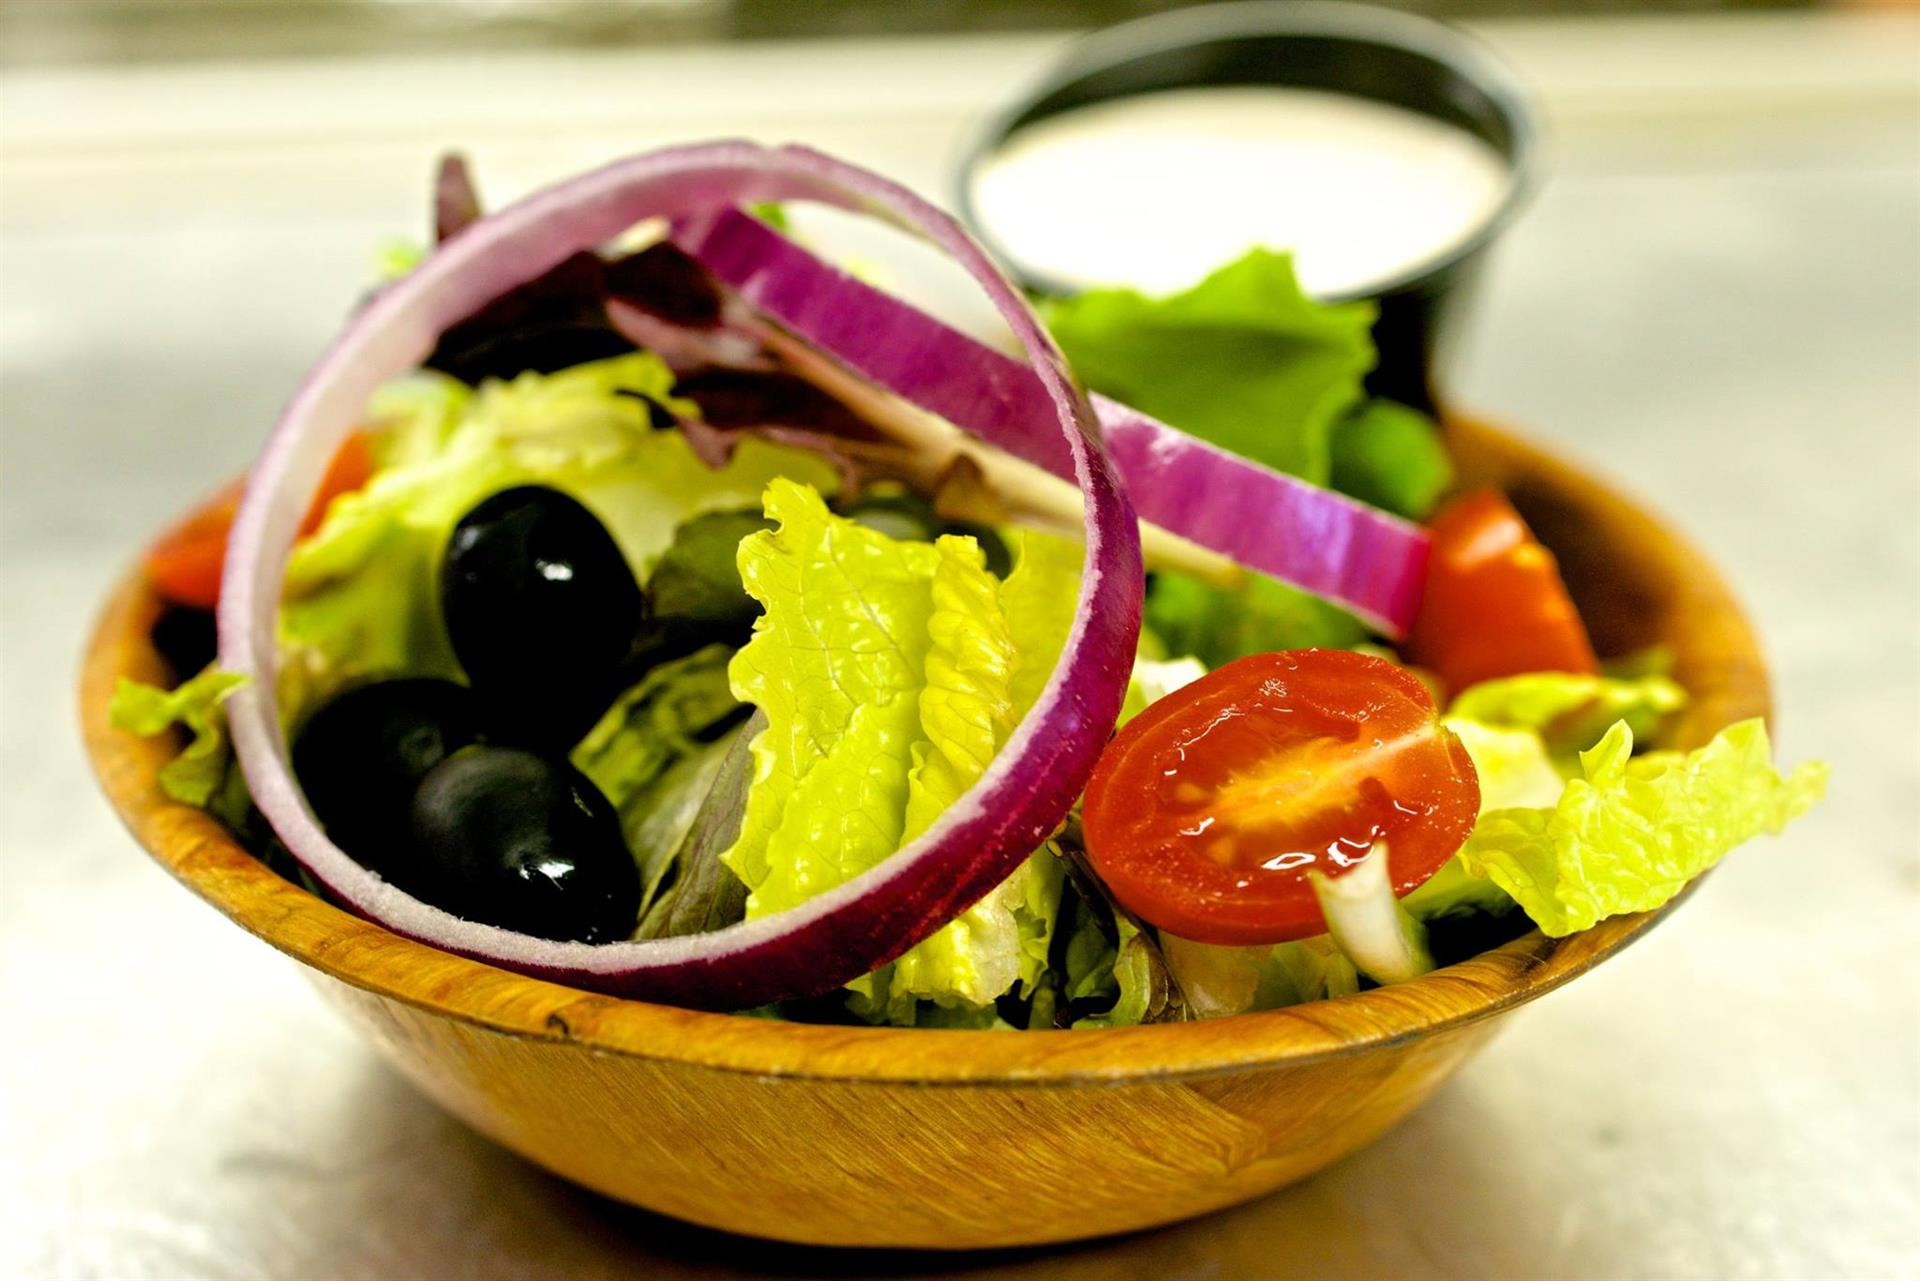 garden salad with lettuce, tomatoes, onions and olives